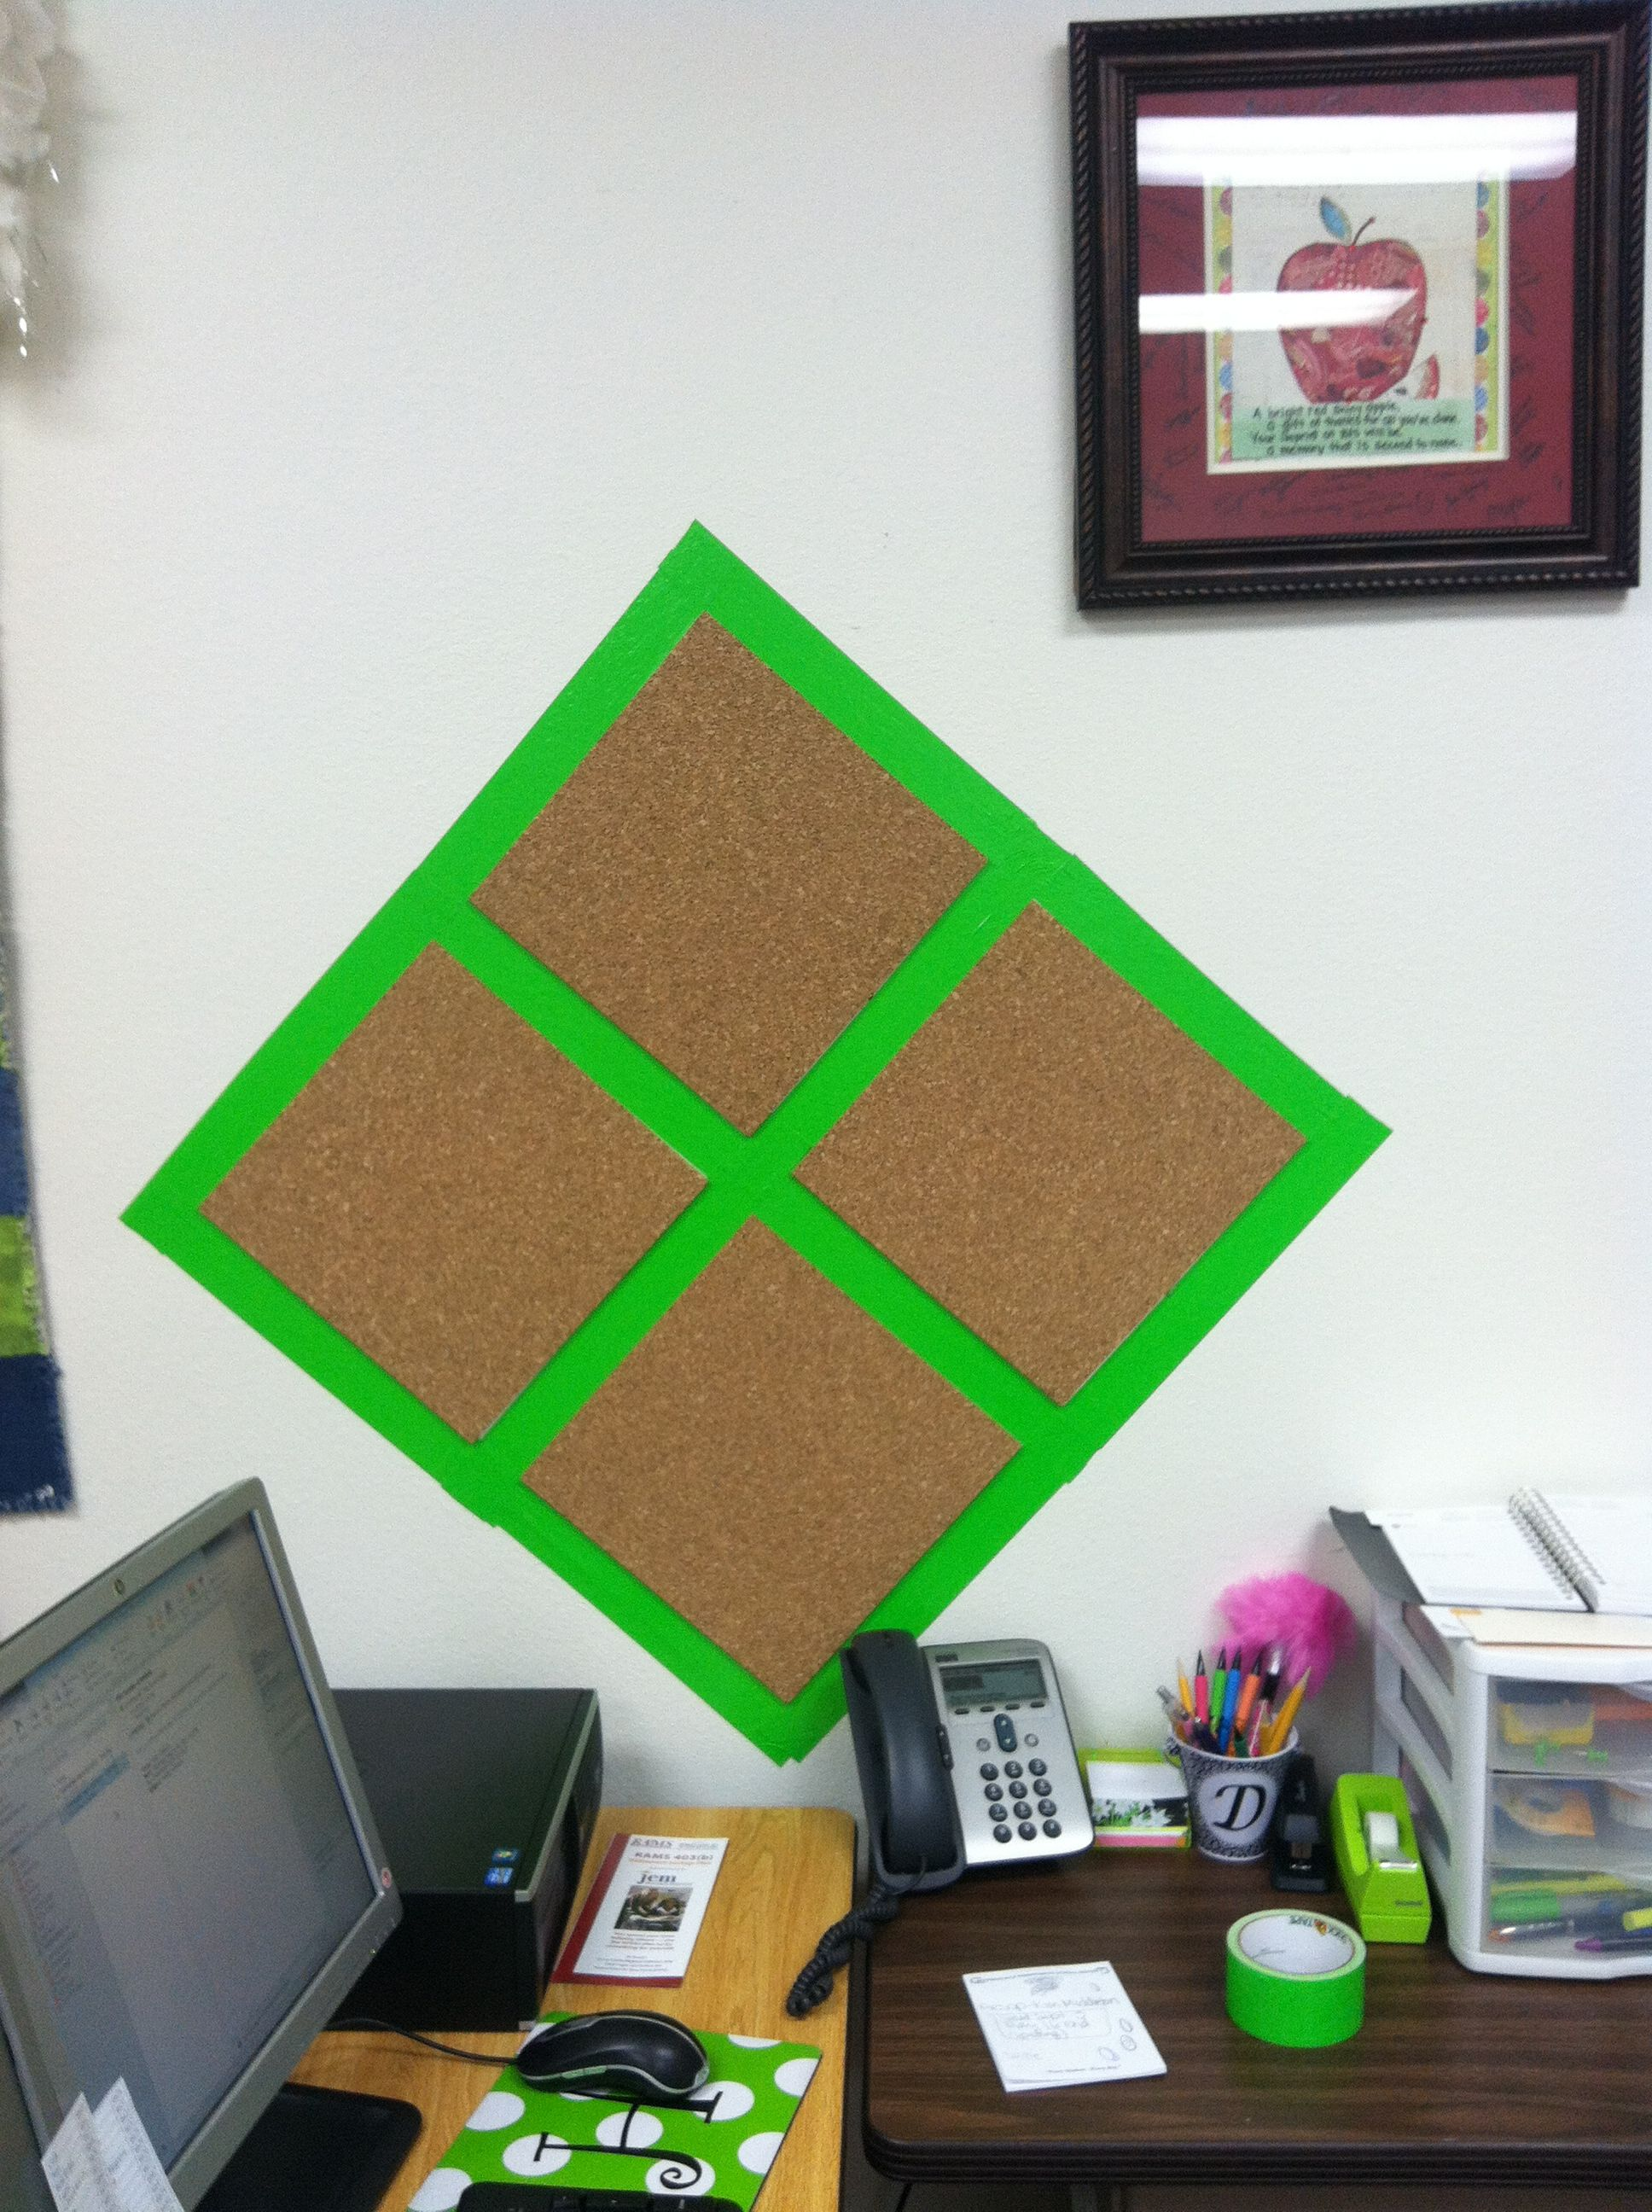 A bulletin board made with cork squares and colored duct tape